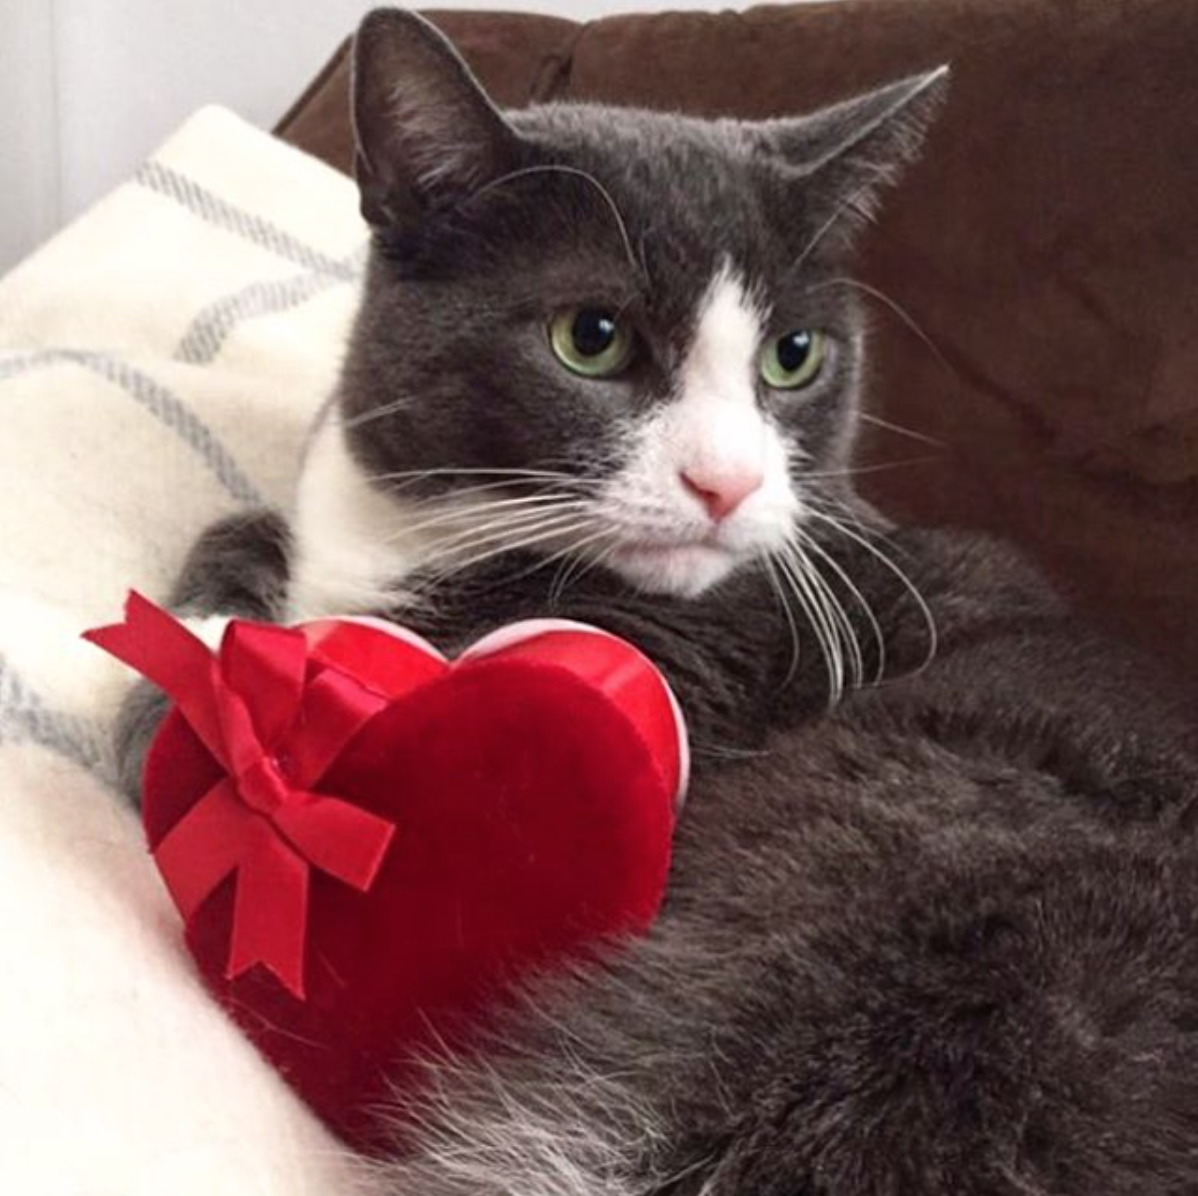 petie-bear-with-valentine-heart-cat-toy